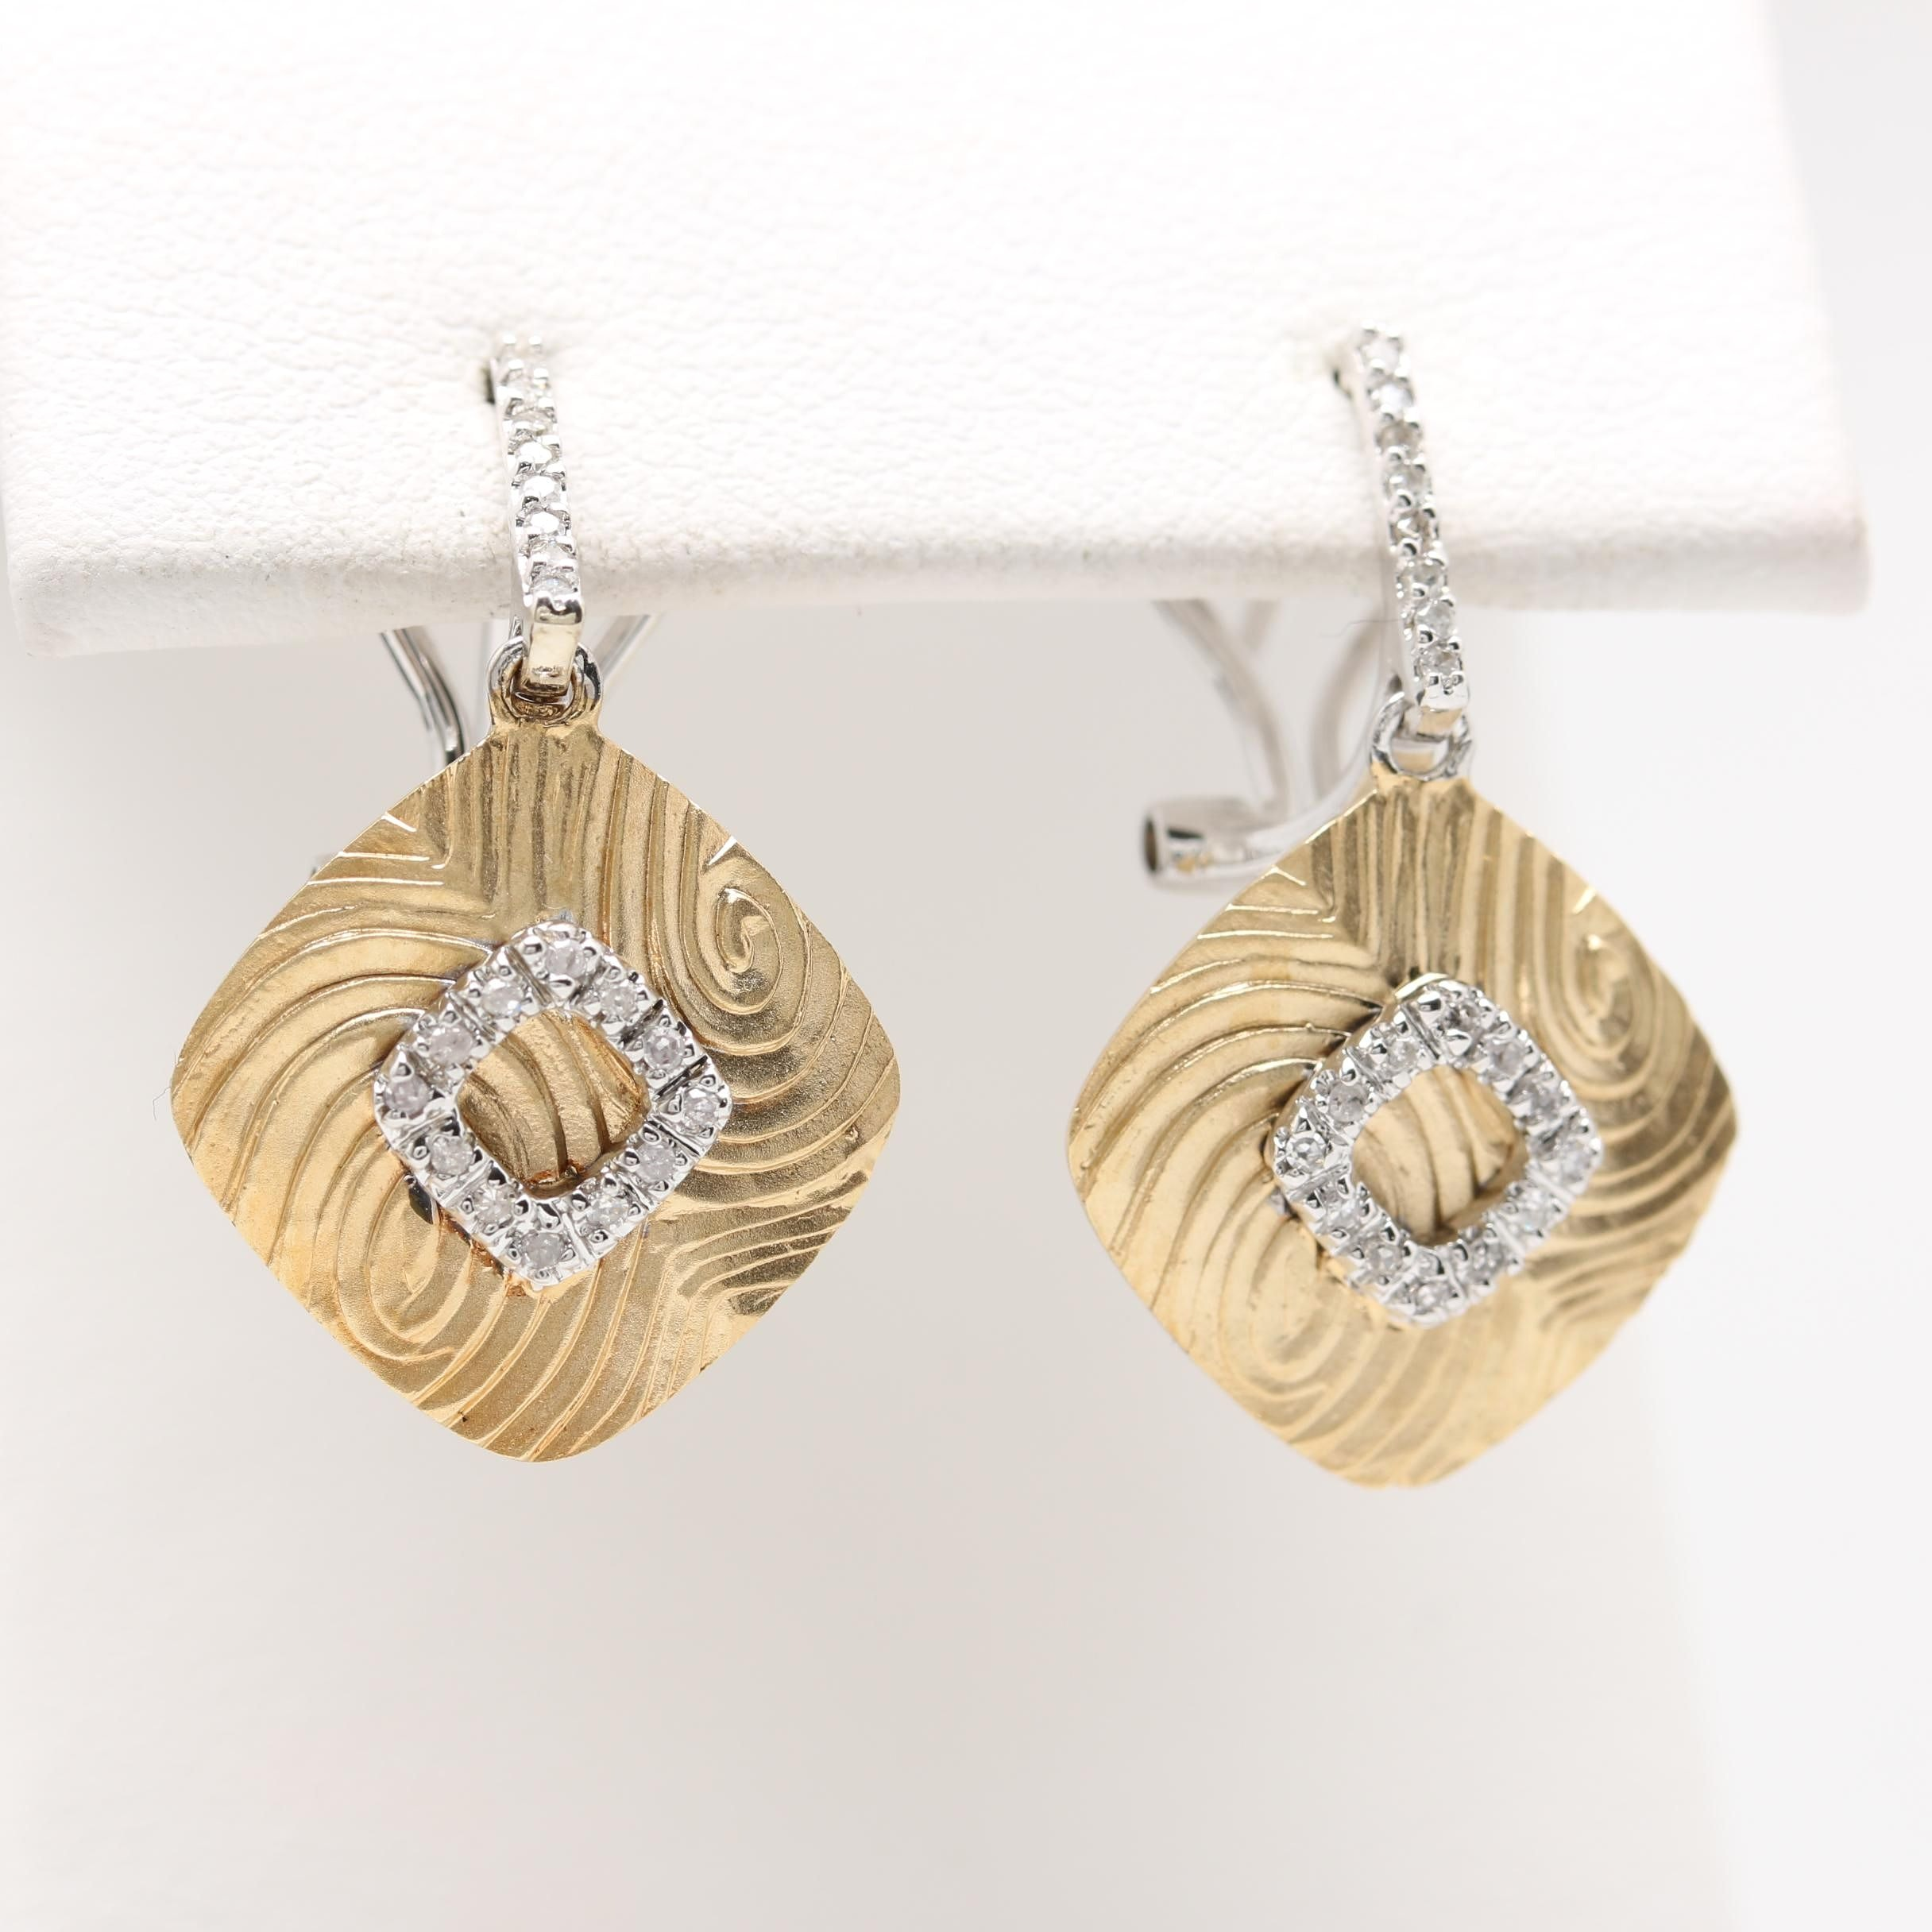 14K Yellow Gold Diamond Dangle Earrings with White Gold Accents